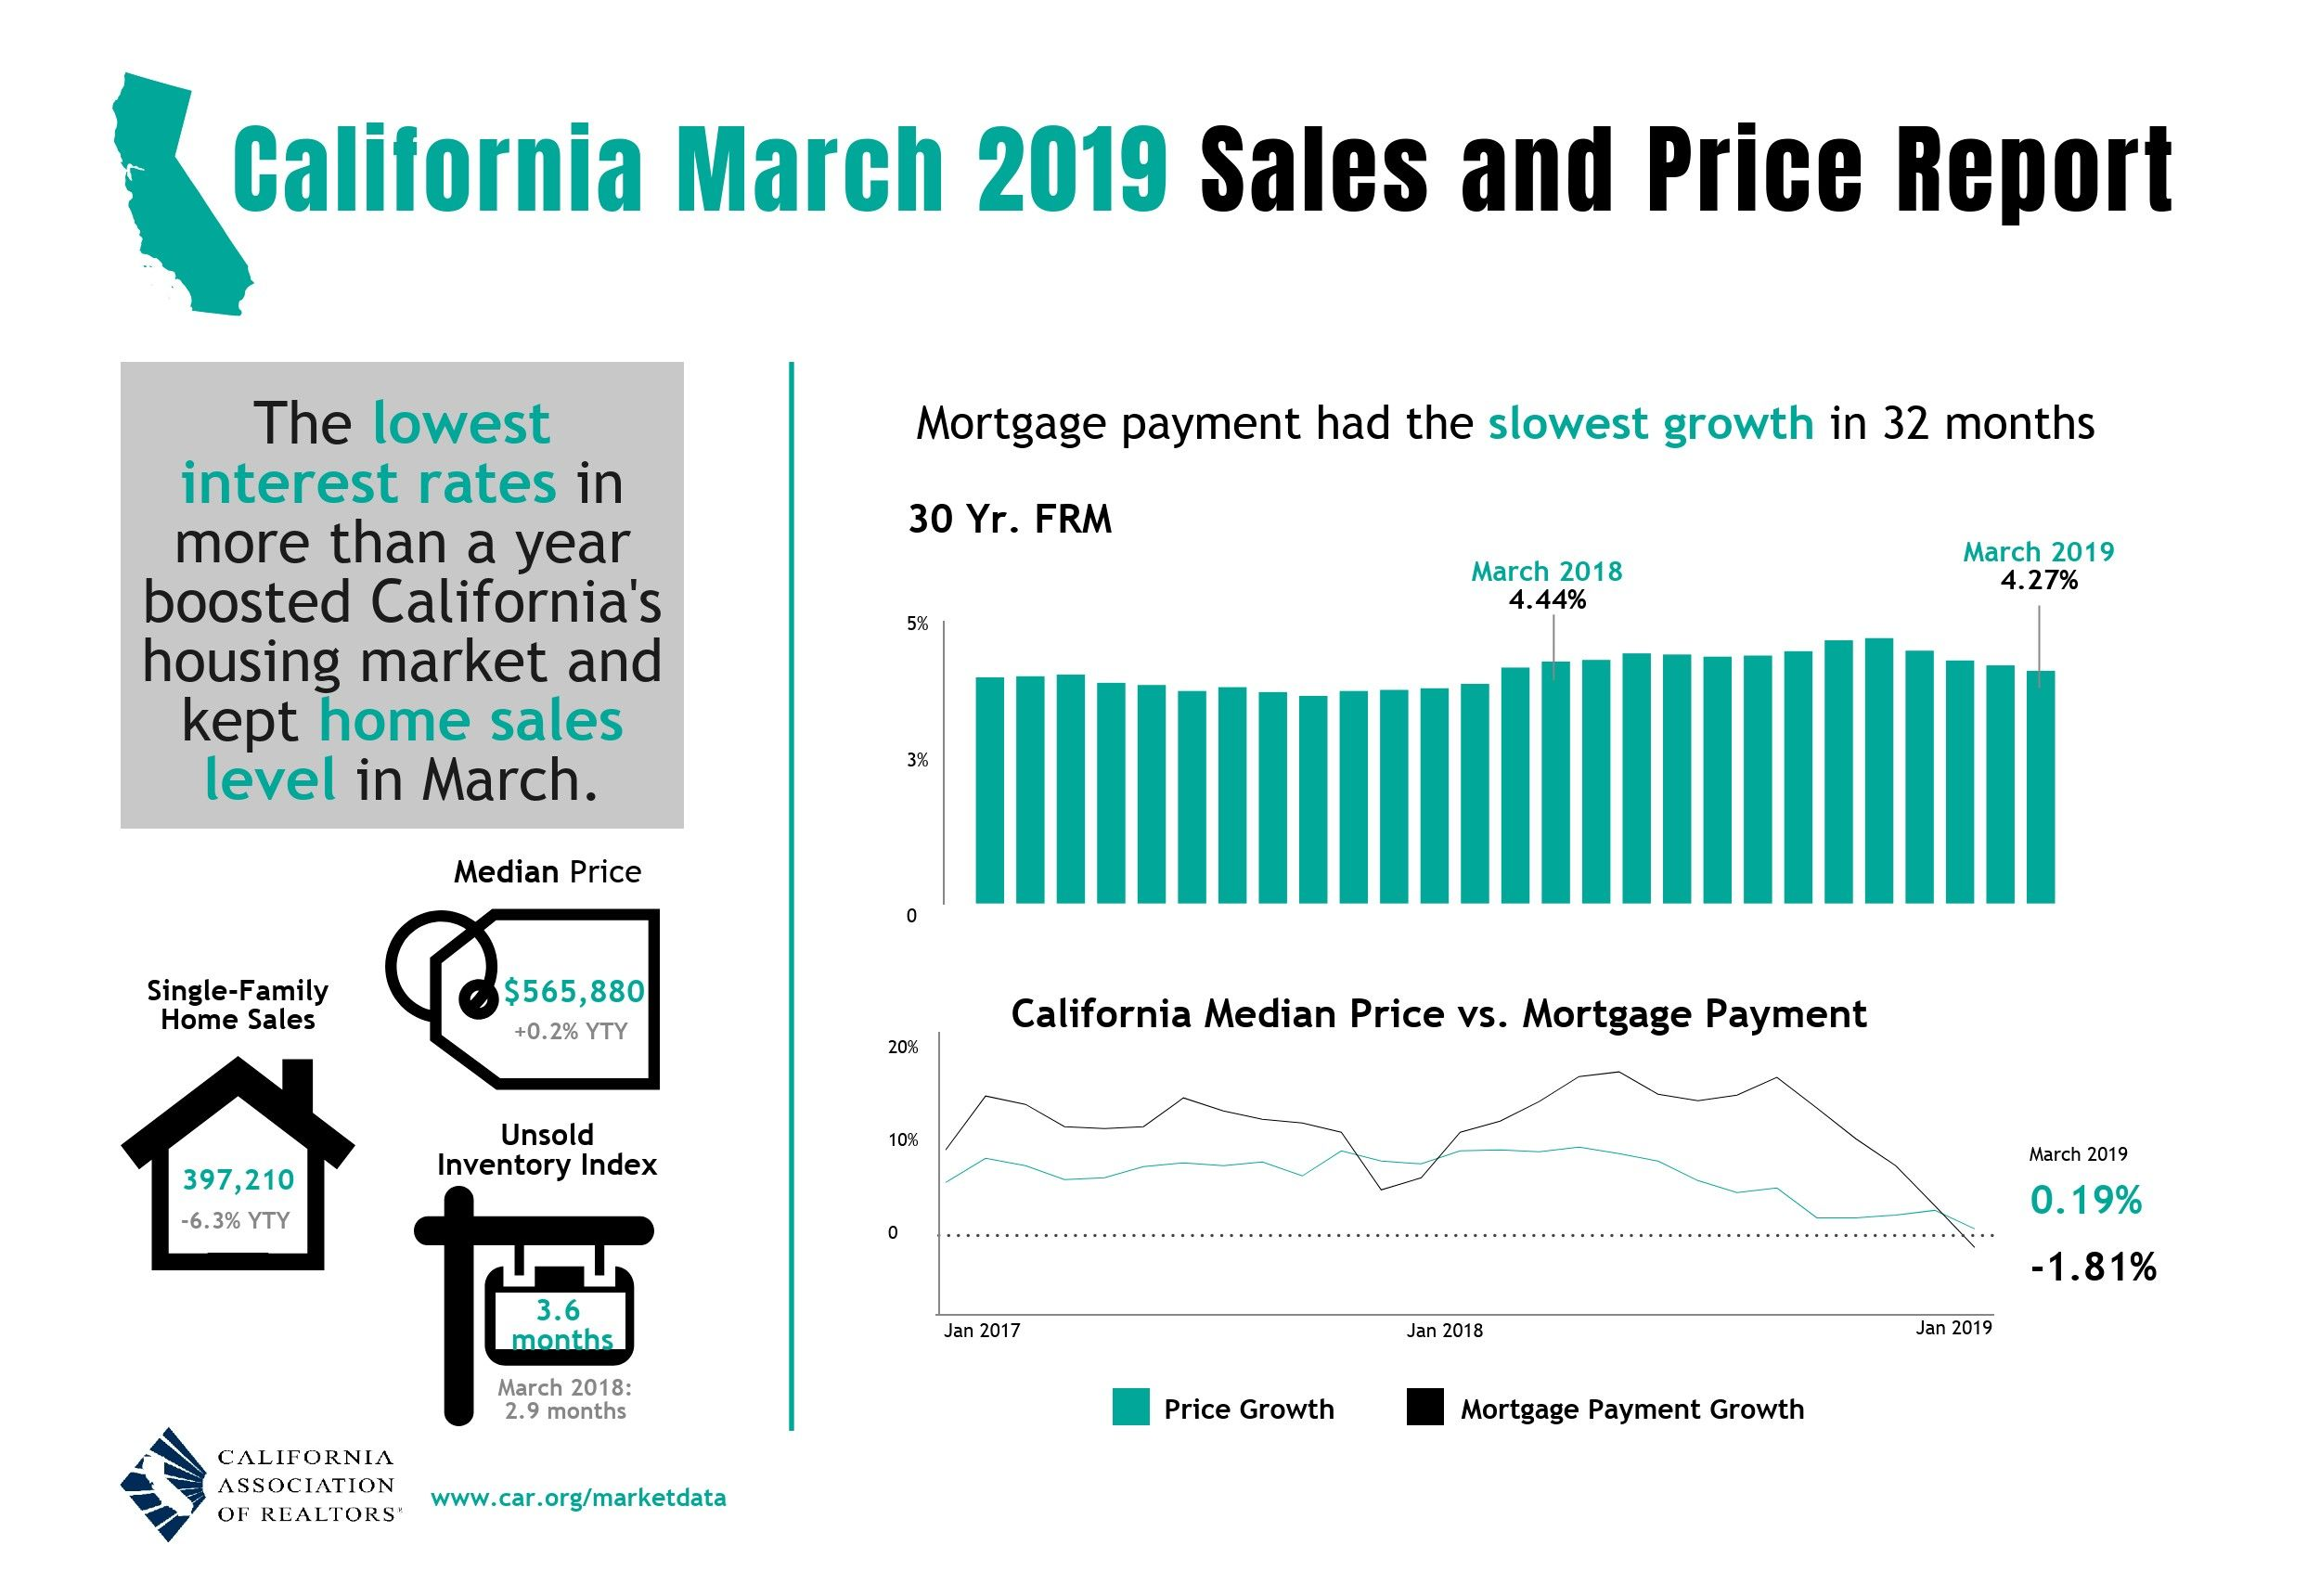 California March 2019 Sales Anbd Price Report Housing Market Real Estate Information California